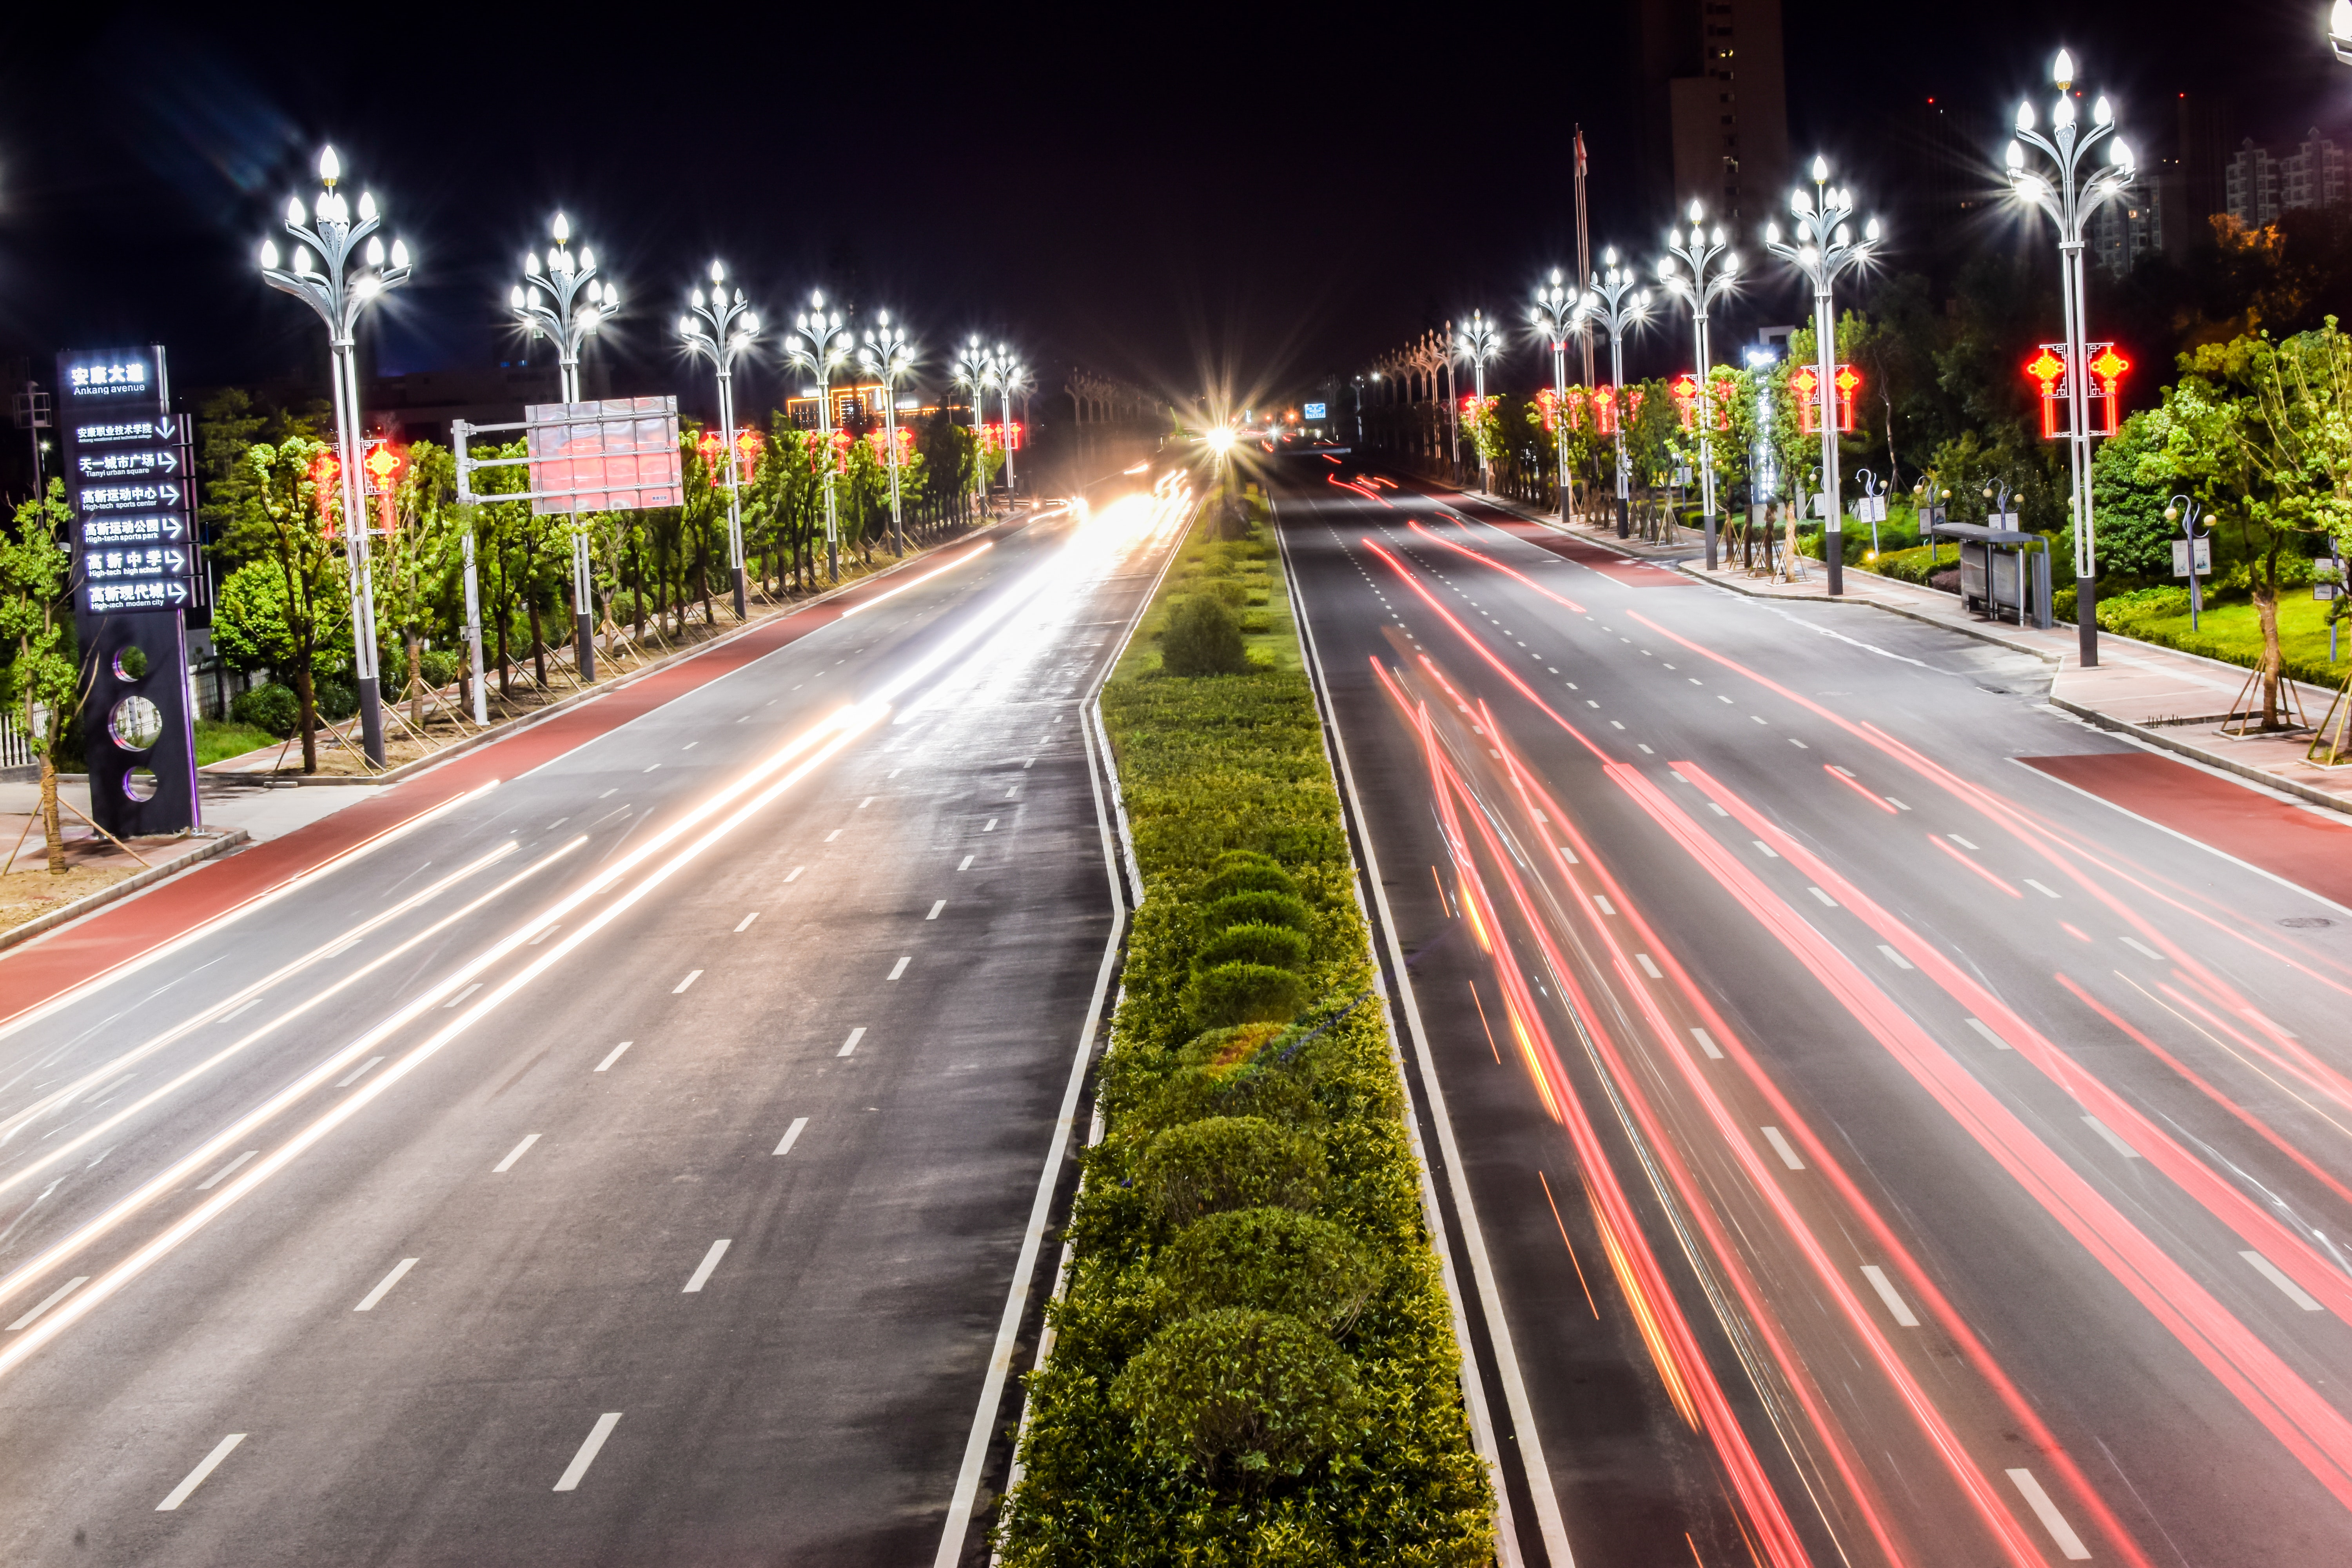 Time-lapse Photography of Cars on Road, Action, Speed, Outdoors, Pavement, HQ Photo